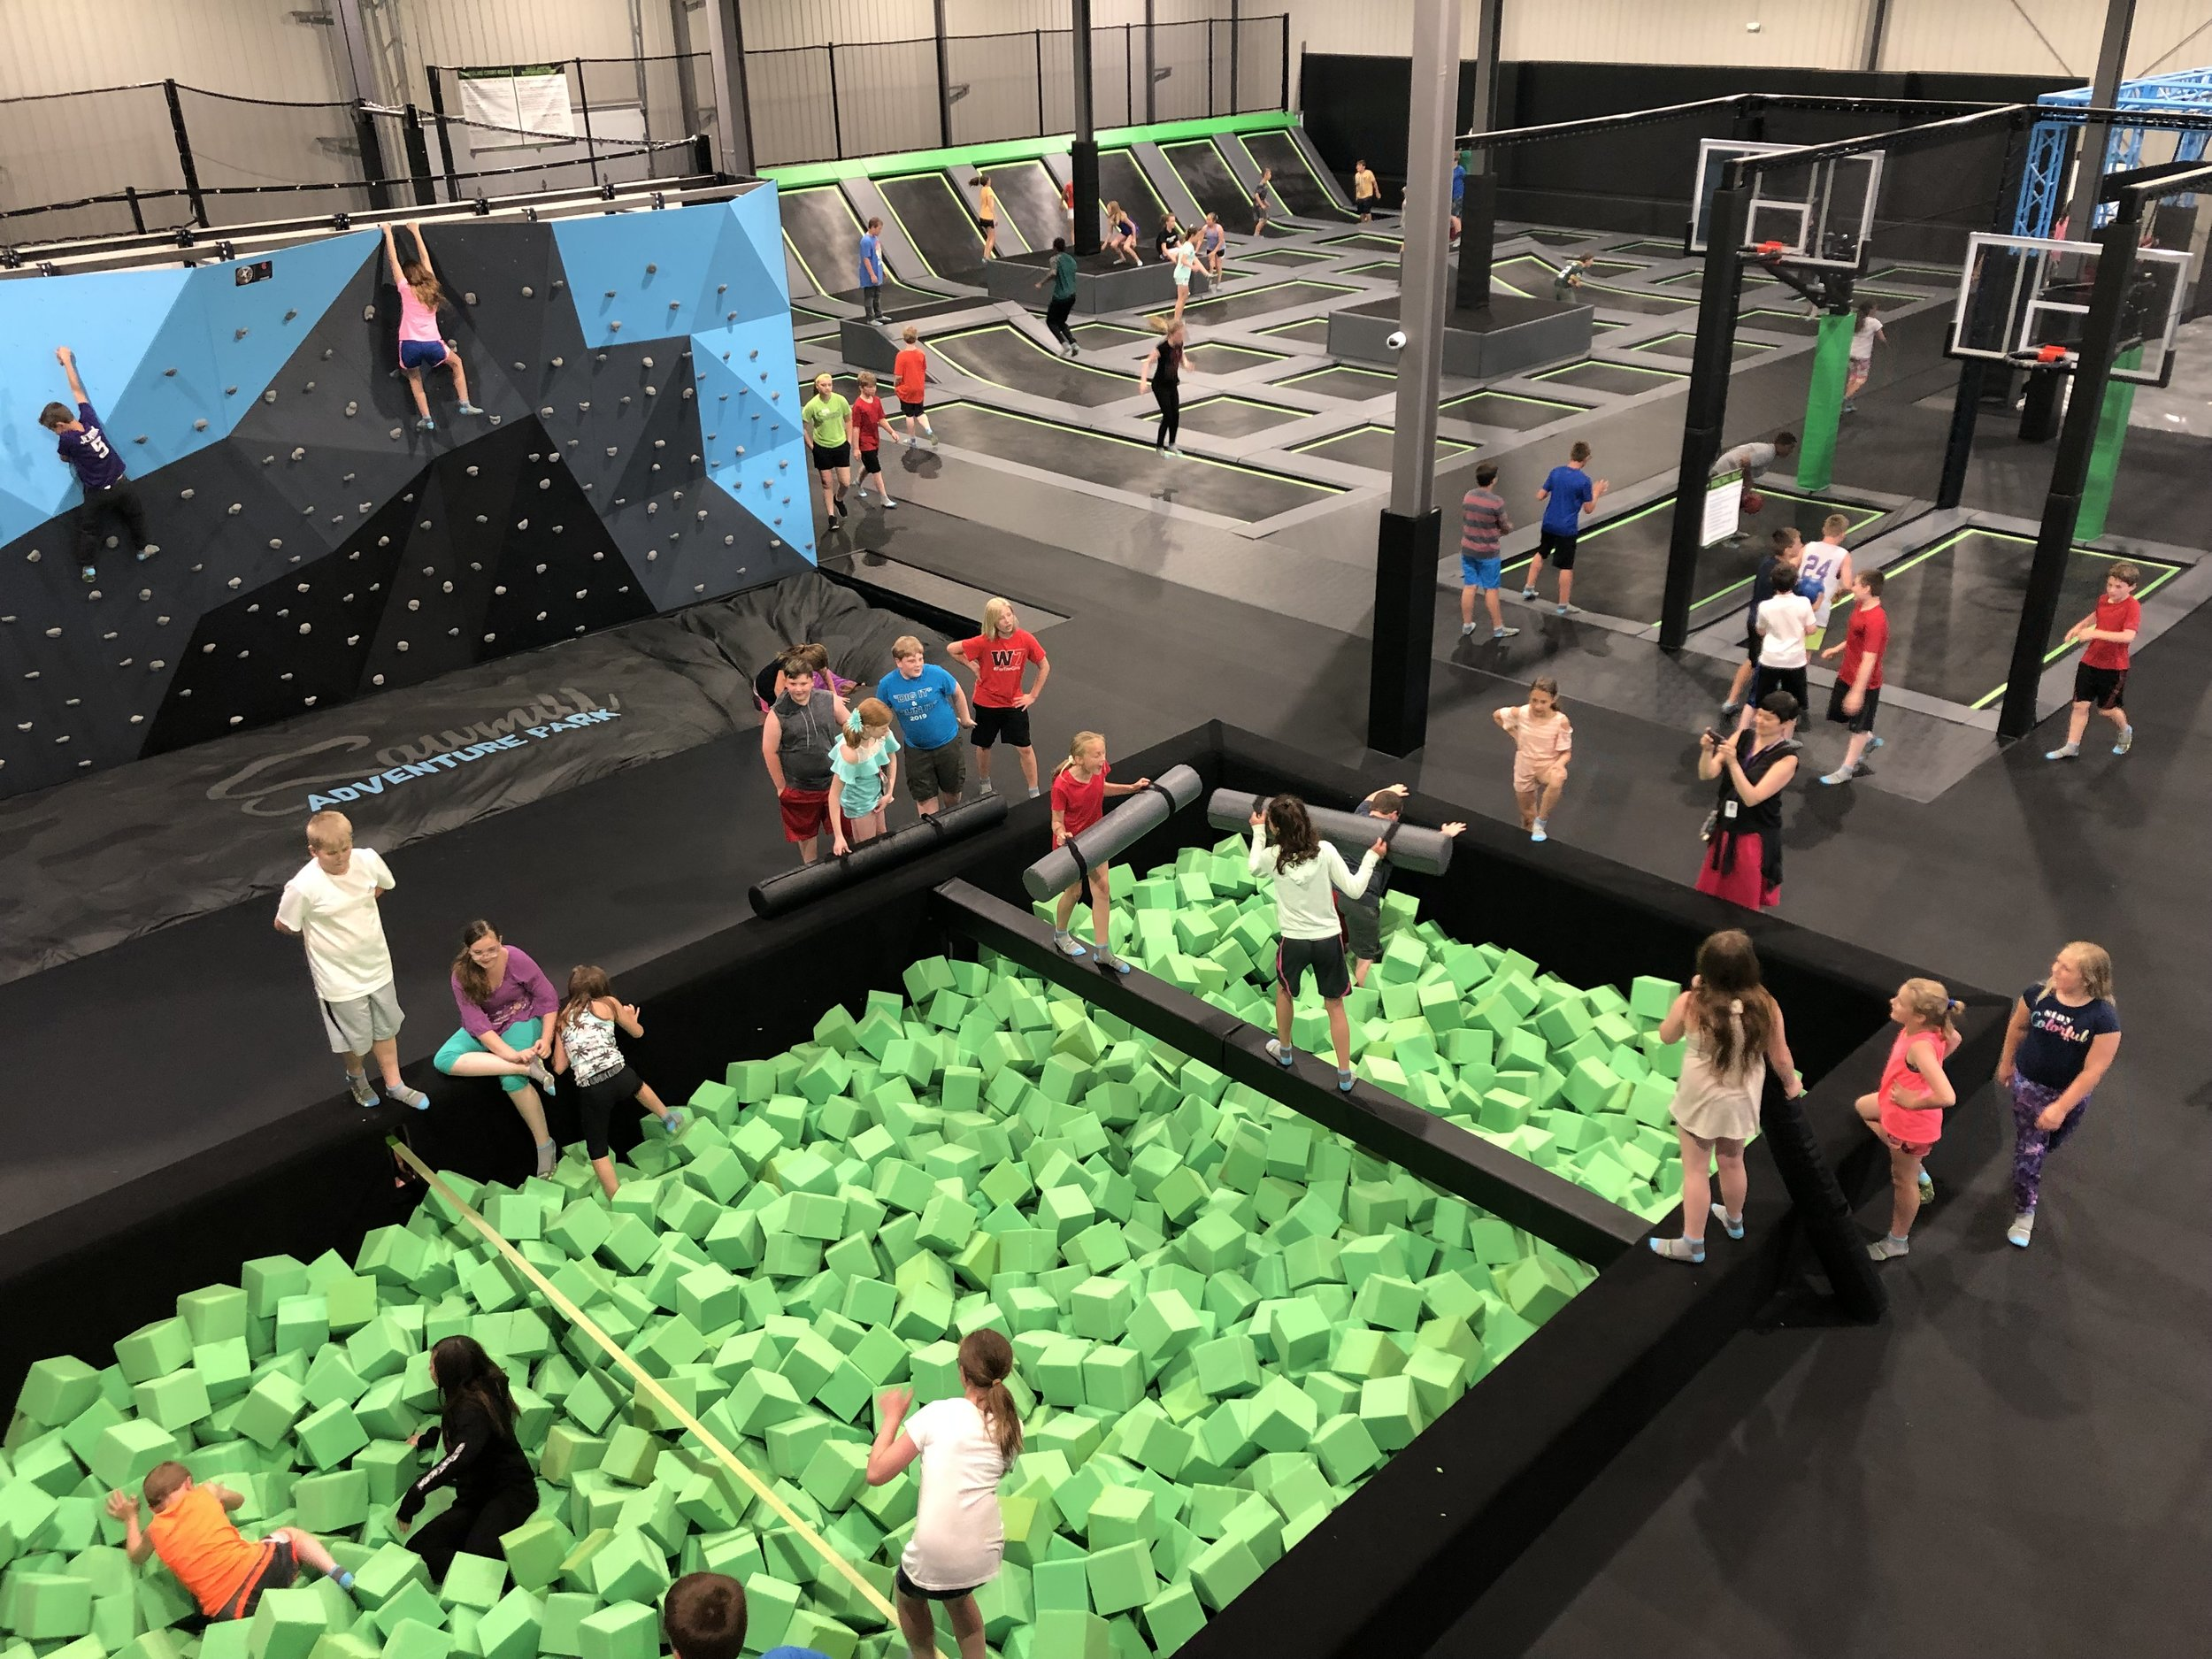 TRAVERSE CLIMBING WALL - Race your friends to the top or try the belay tower for a difficult full body challenge.